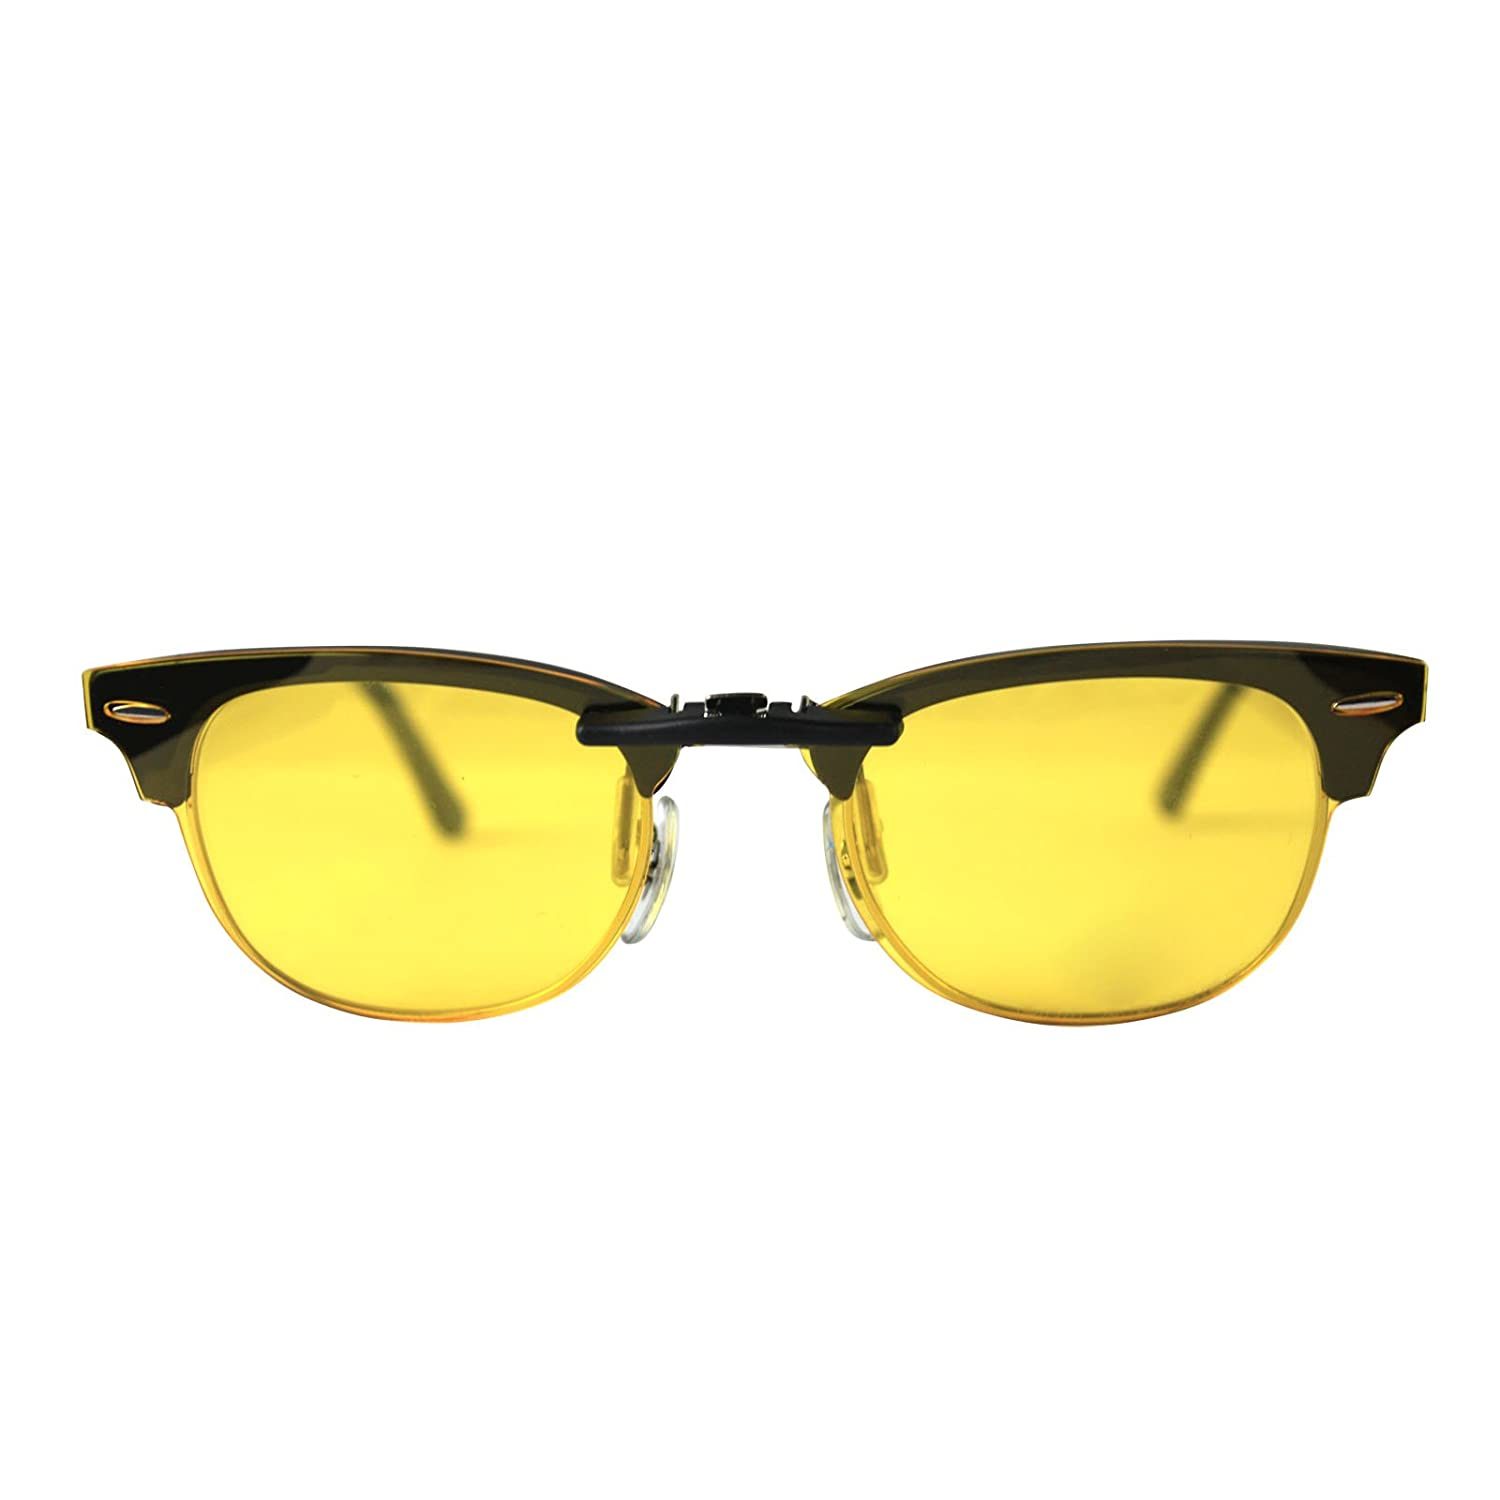 dd5dda4ca5 Custom Polarized CLIP-ON Sunglasses for Ray-Ban CLUBMASTER RB5154 49X21  5154(No Frame) night vision Yellow - - Amazon.com